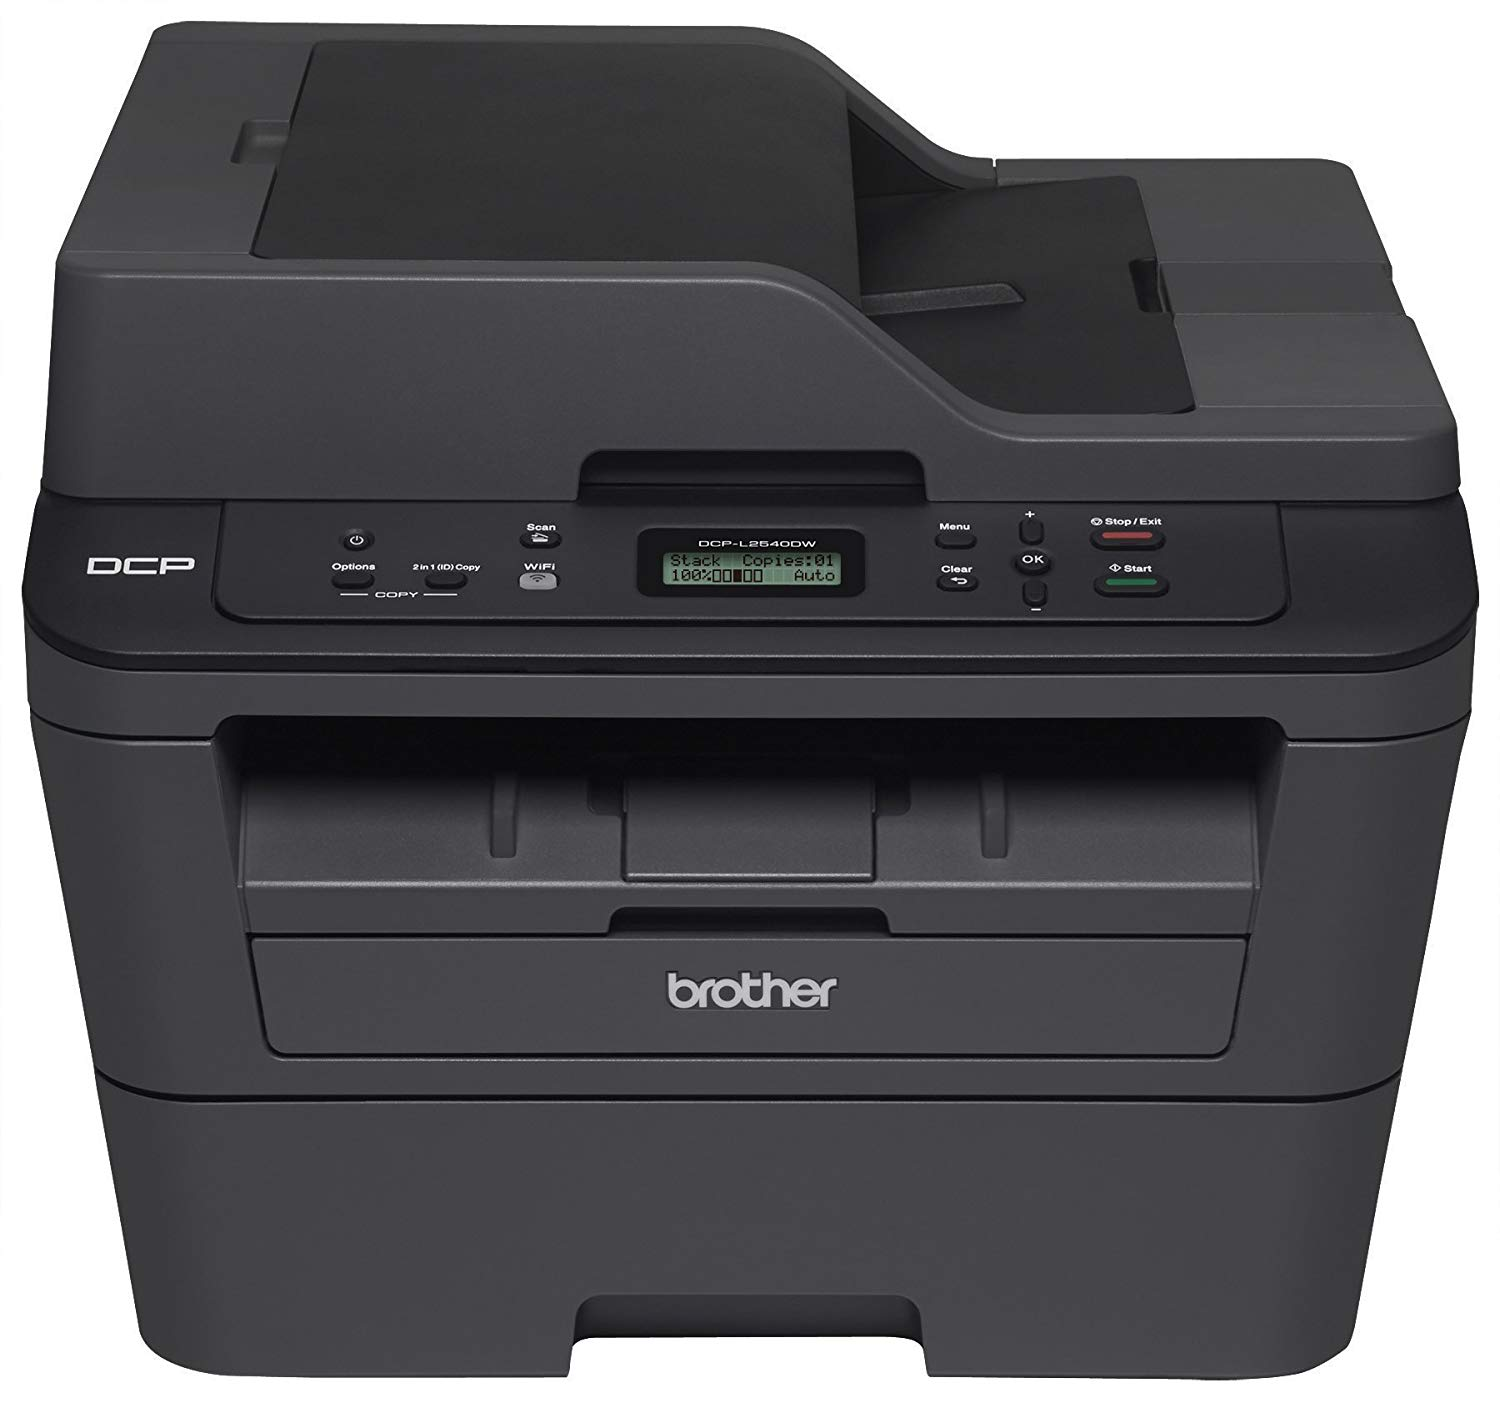 Download Brother DCP L 2540dw drivers